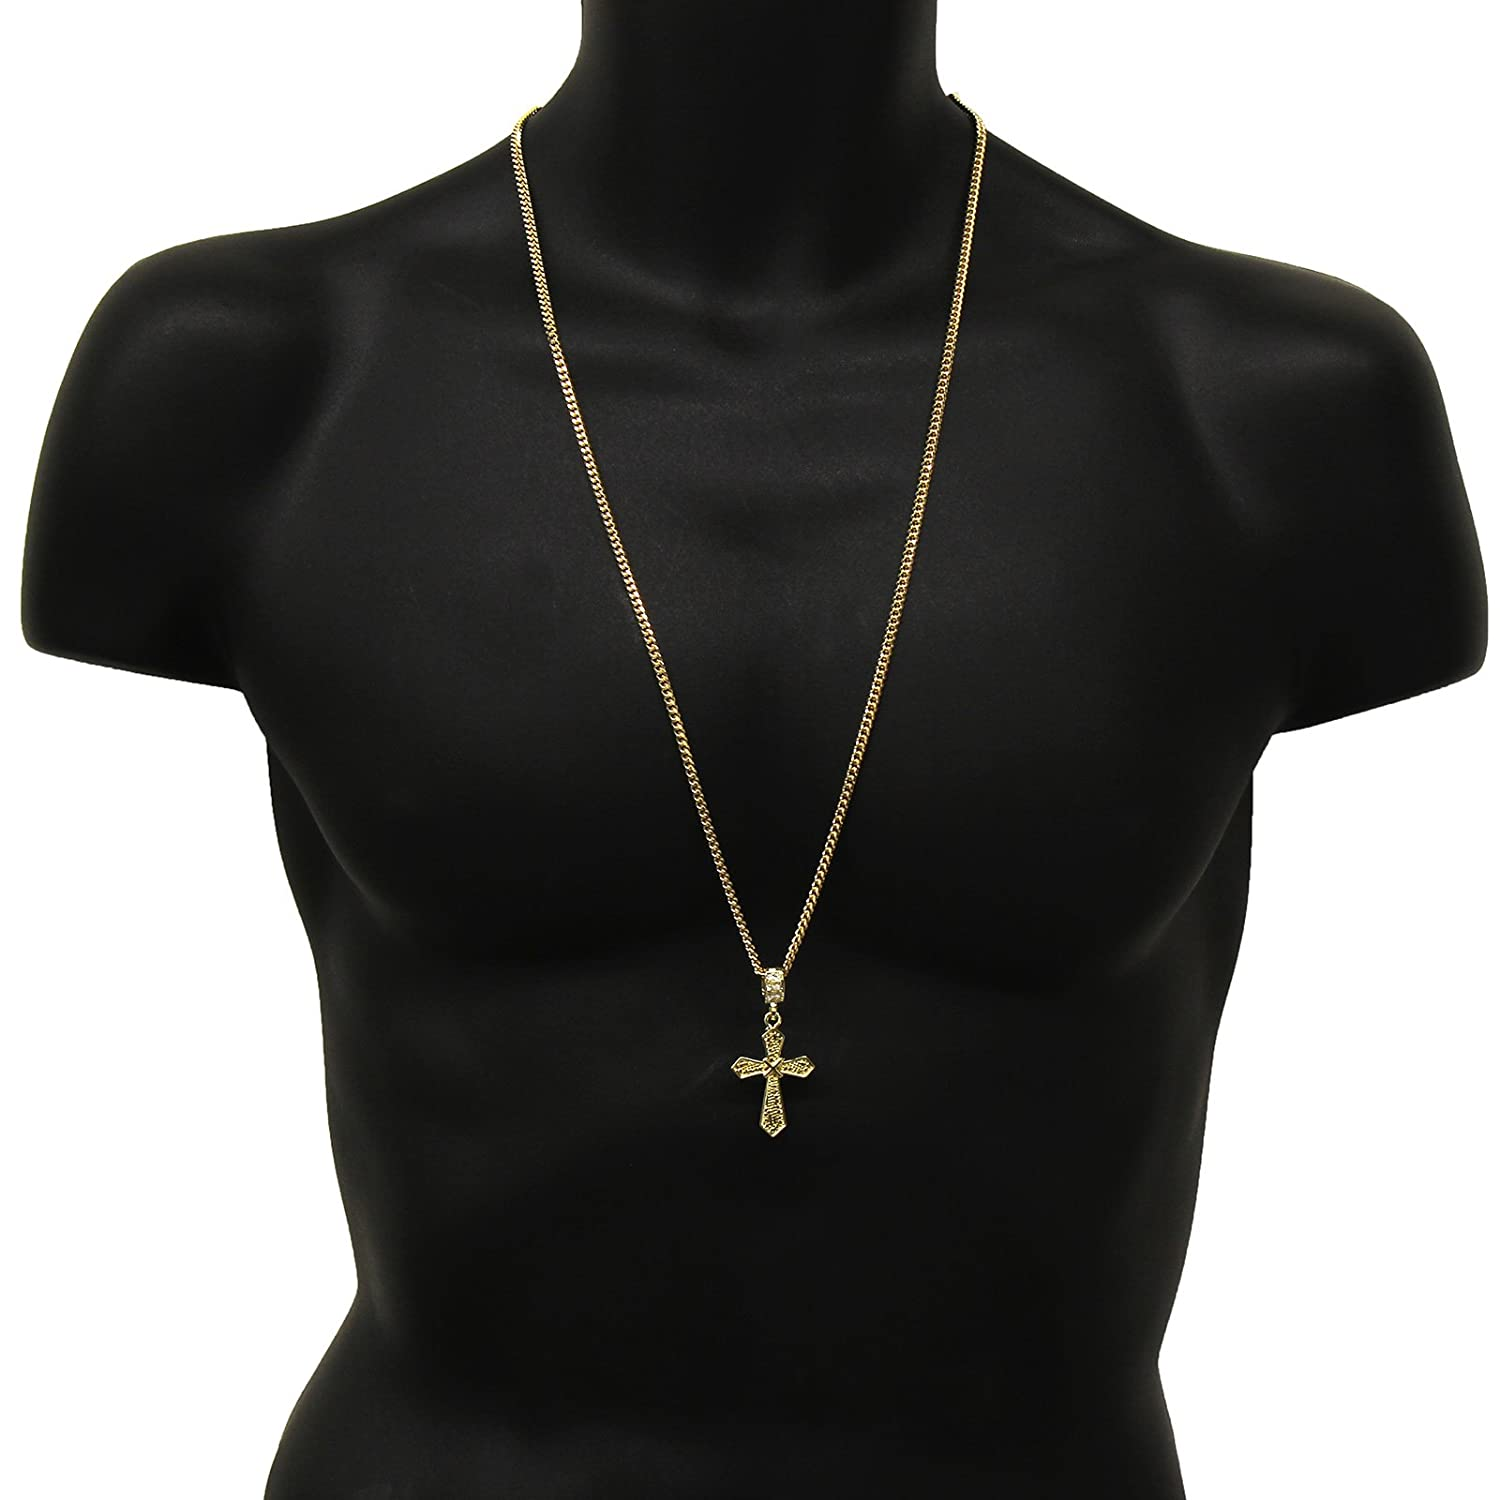 Gold Tone X in the Middle Cross Pendant Hip-hop 3mm 30 Cuban Necklaces Chain